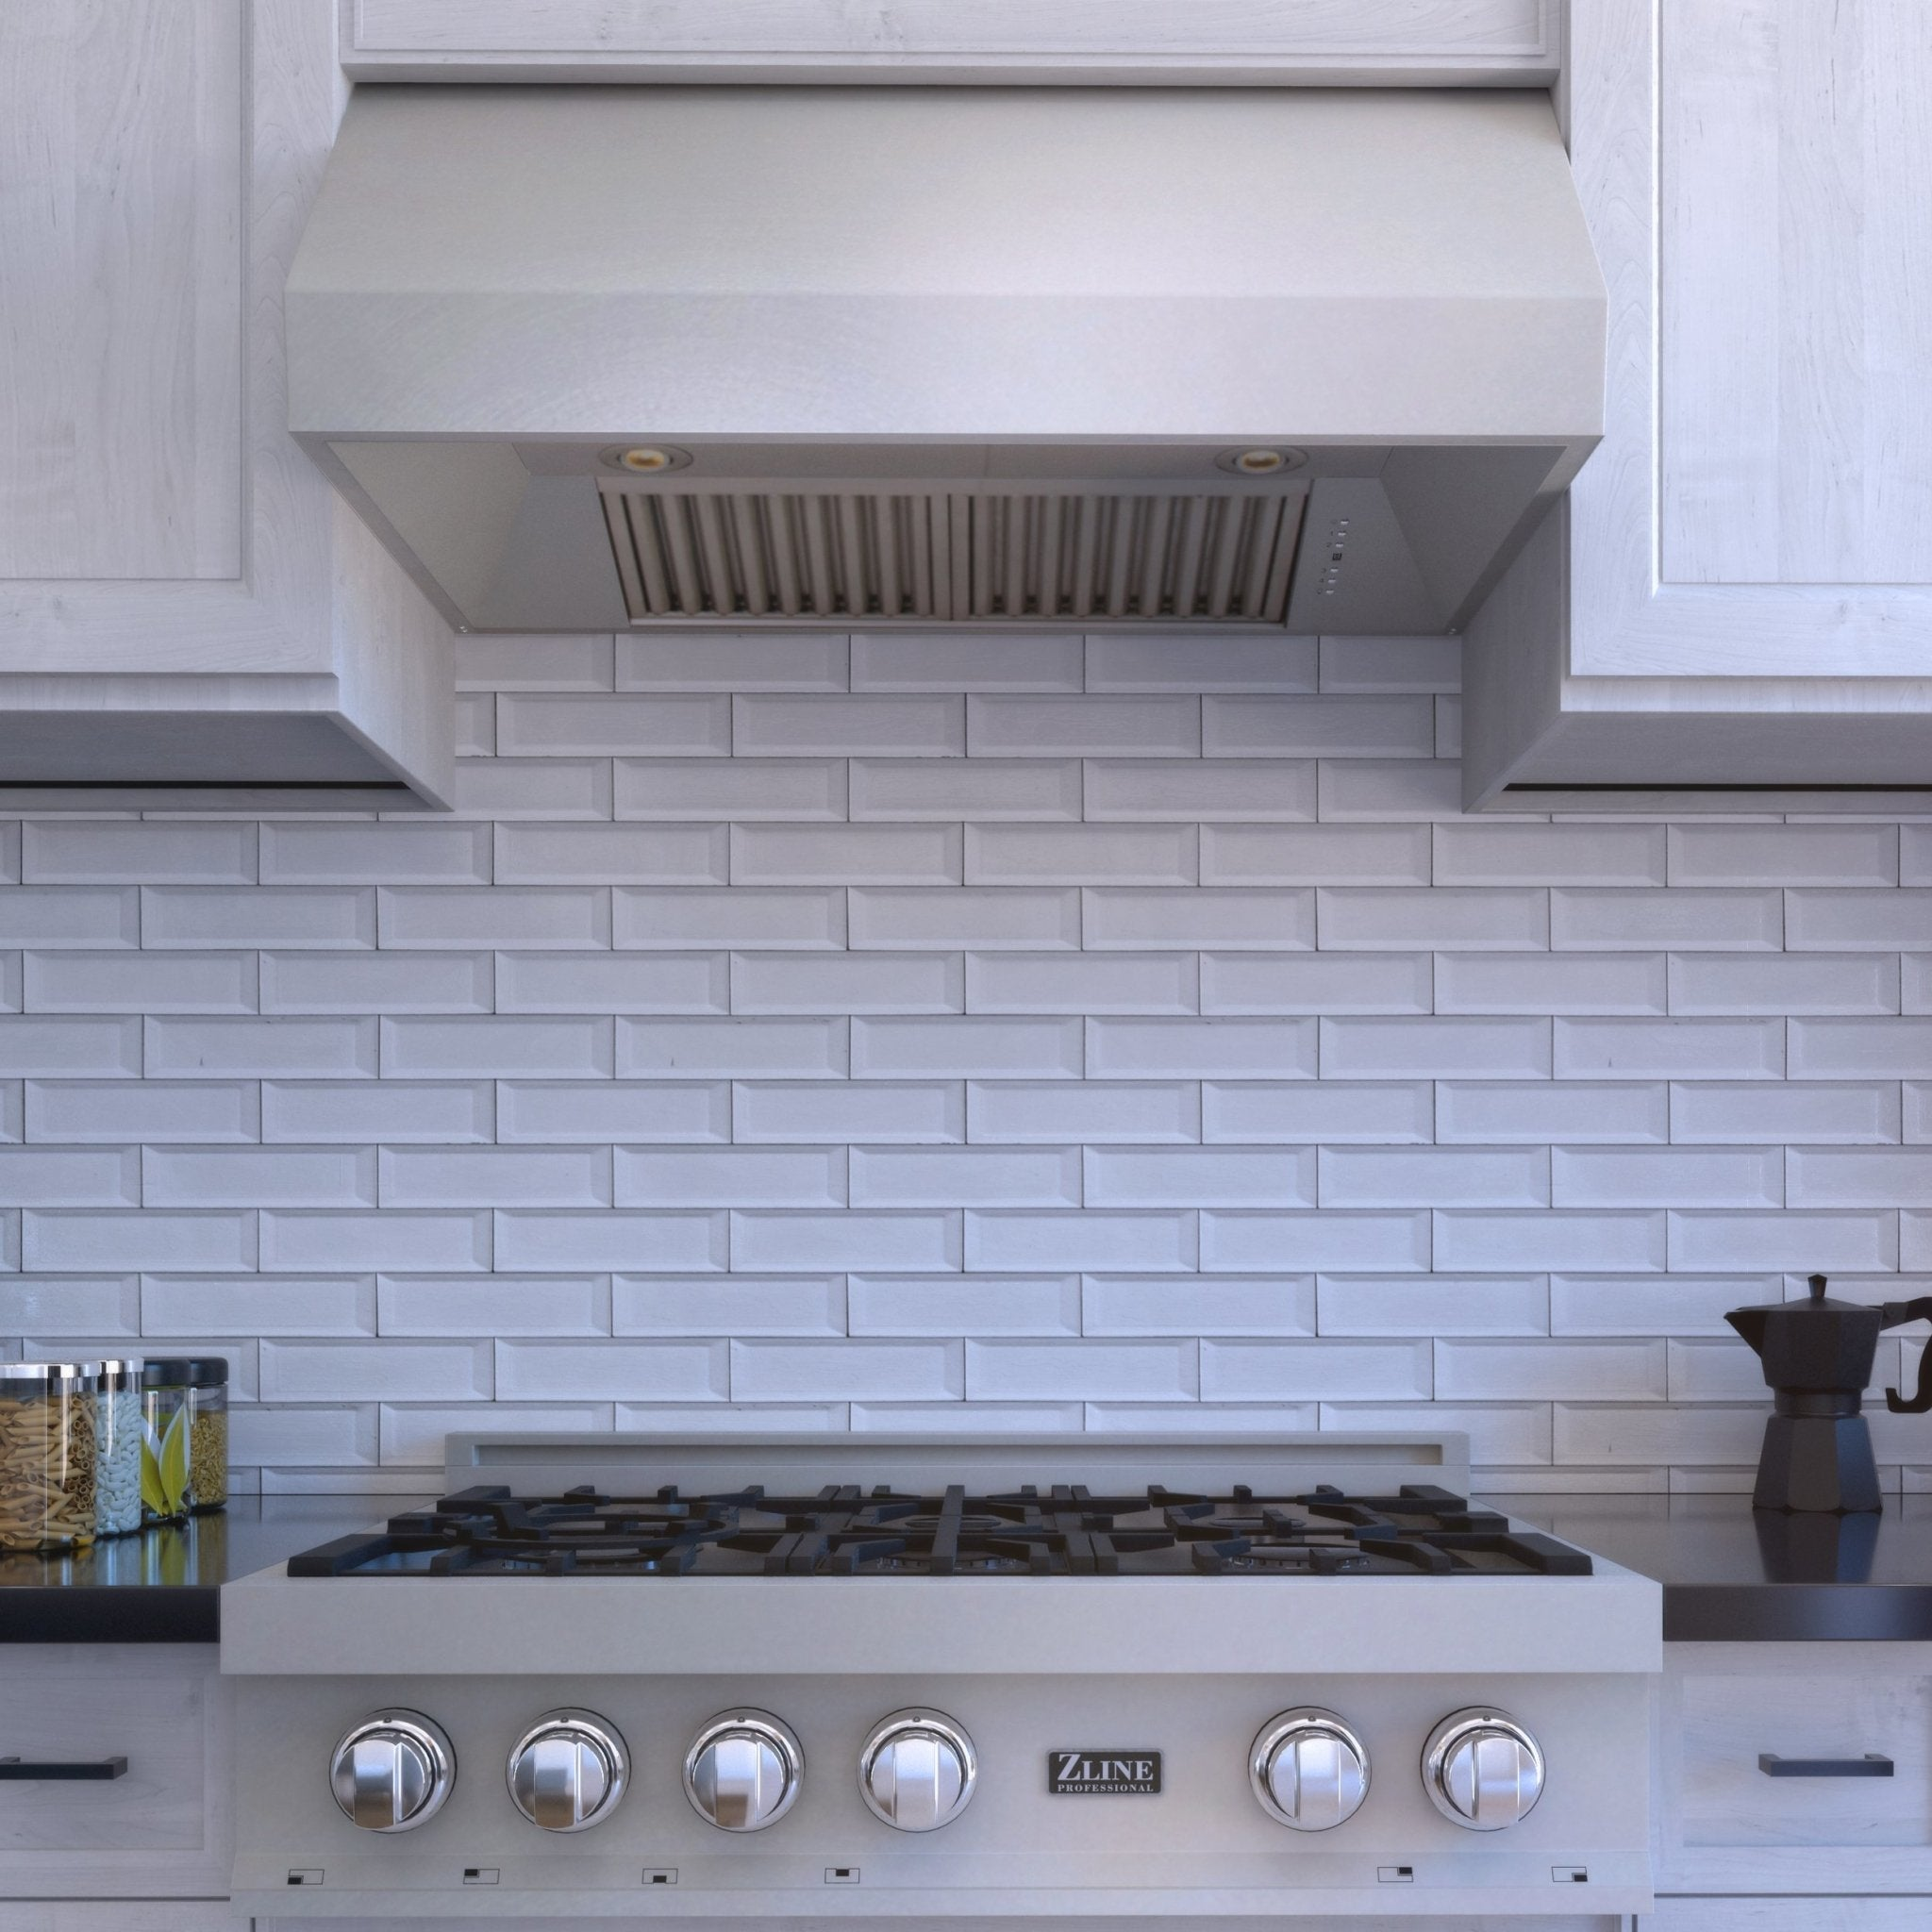 ZLINE Kitchen and Bath, ZLINE DuraSnow® Stainless Steel Under Cabinet Range Hood (8685S), 8685S-30,